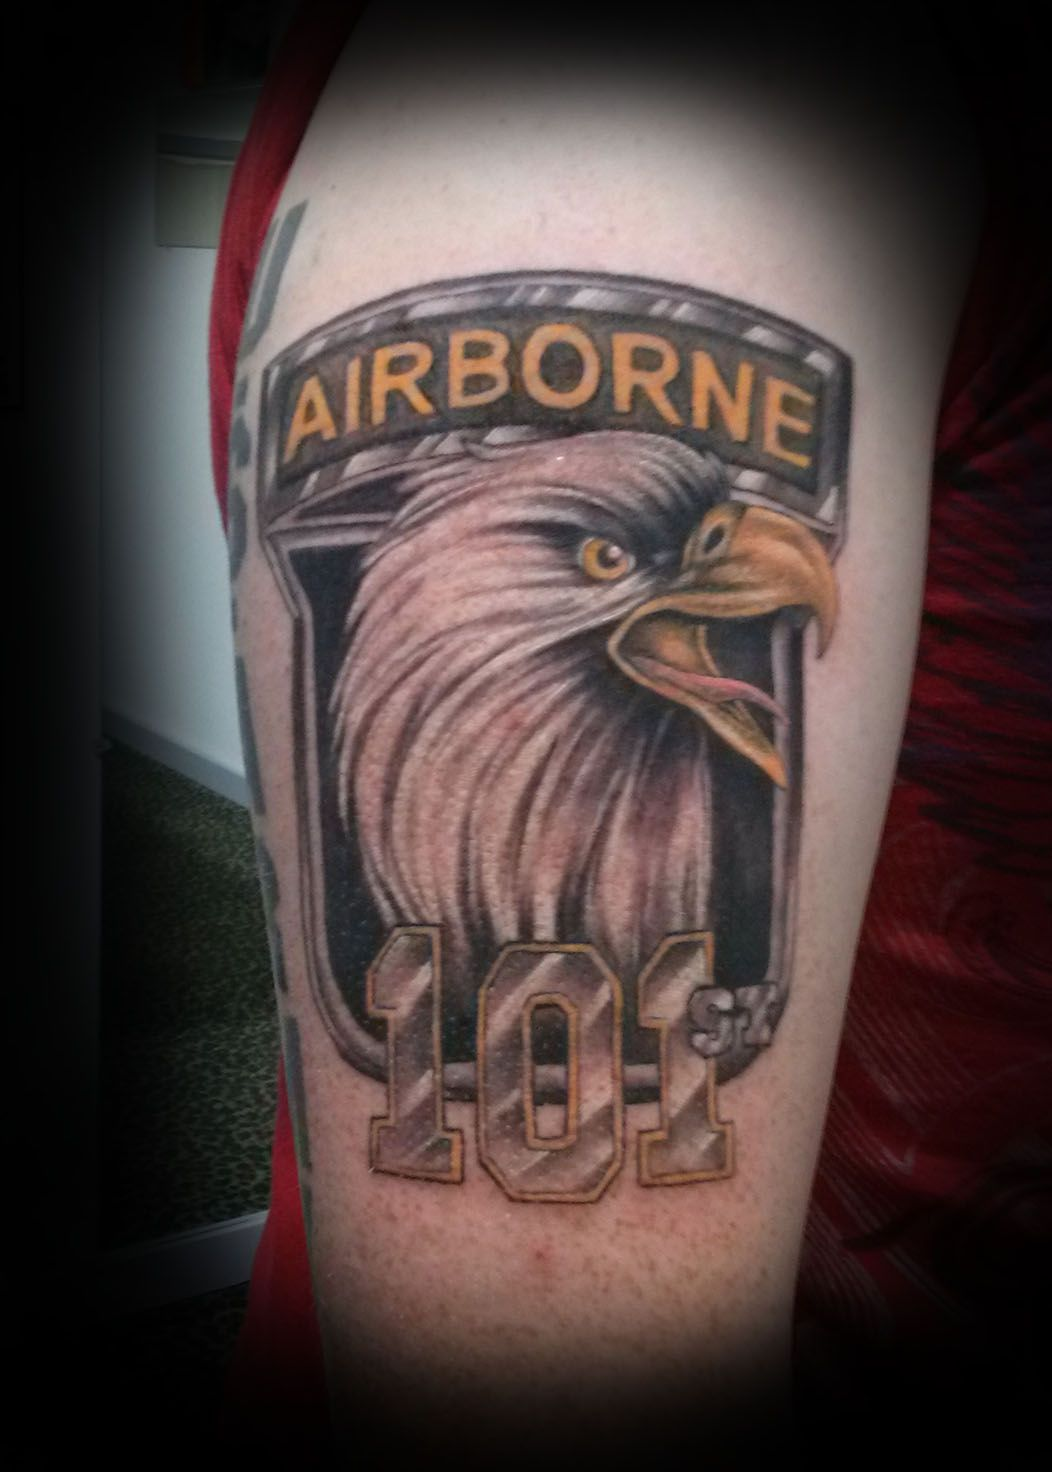 28 101St Airborne Tattoo Designs 30 Airborne Tattoos Ideas And Designs